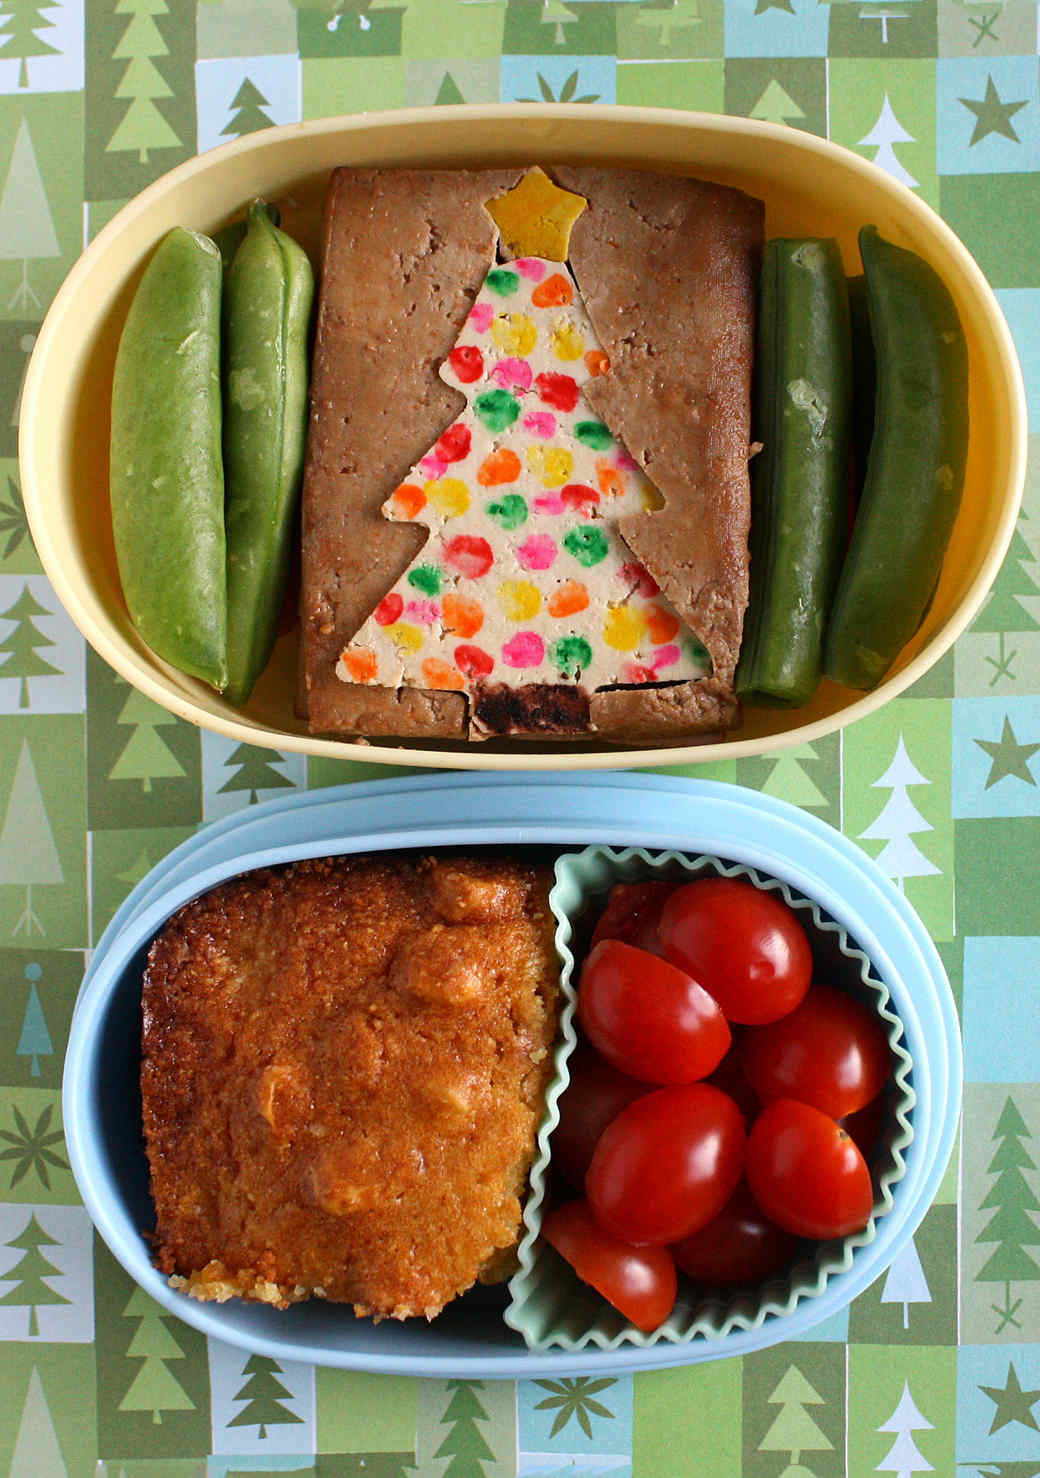 tofu-christmas-tree-bento-box.jpg (skyword:357485)